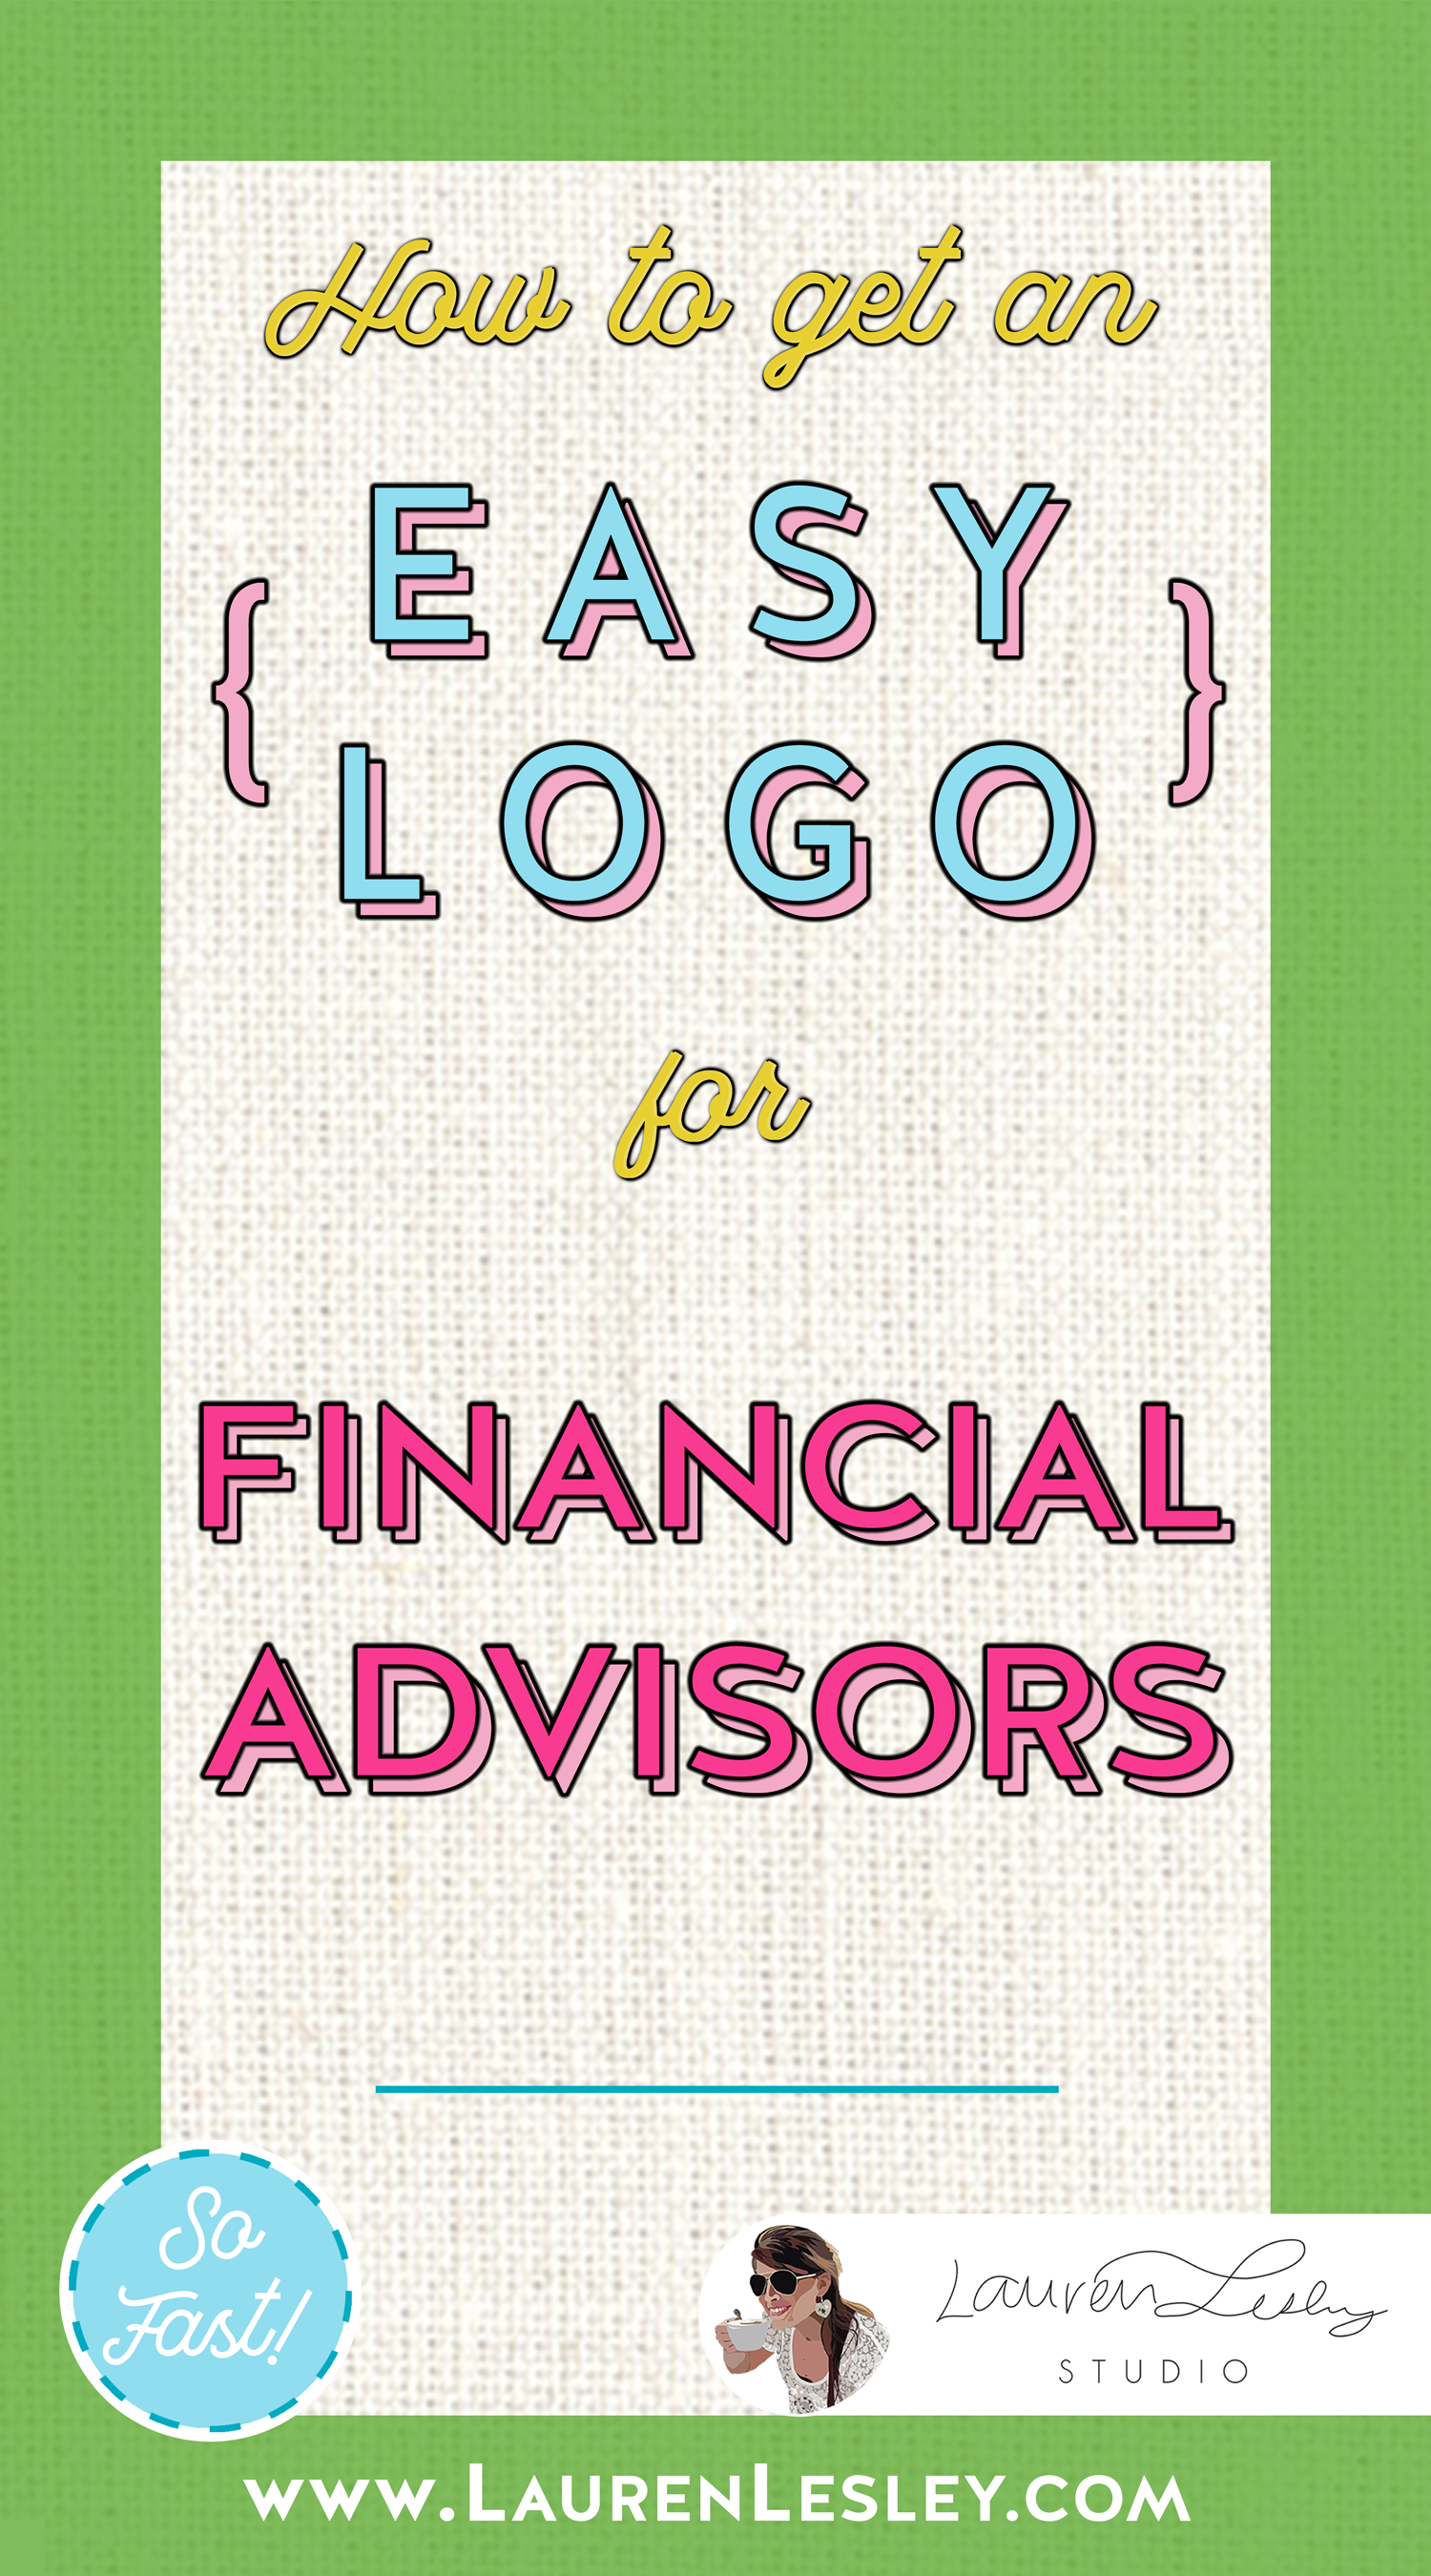 Get a Custom Logo for your Financial Business